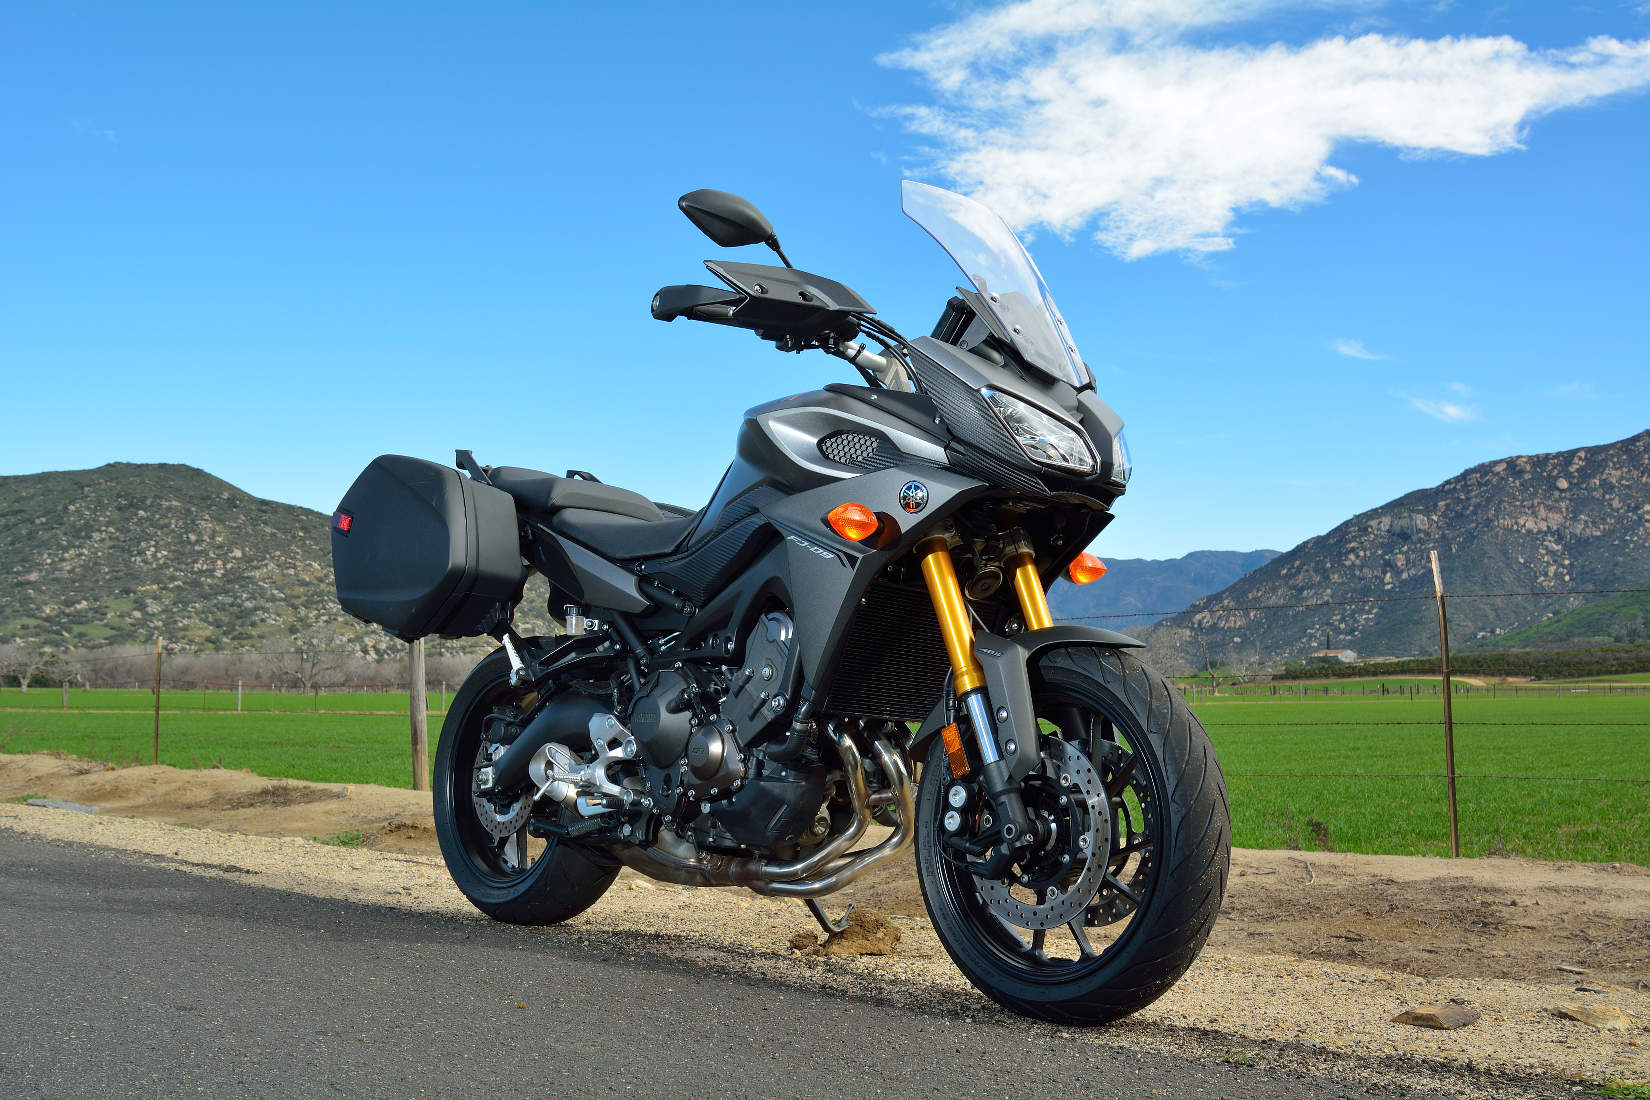 2015 Yamaha Fj 09 Md Ride Review Part One